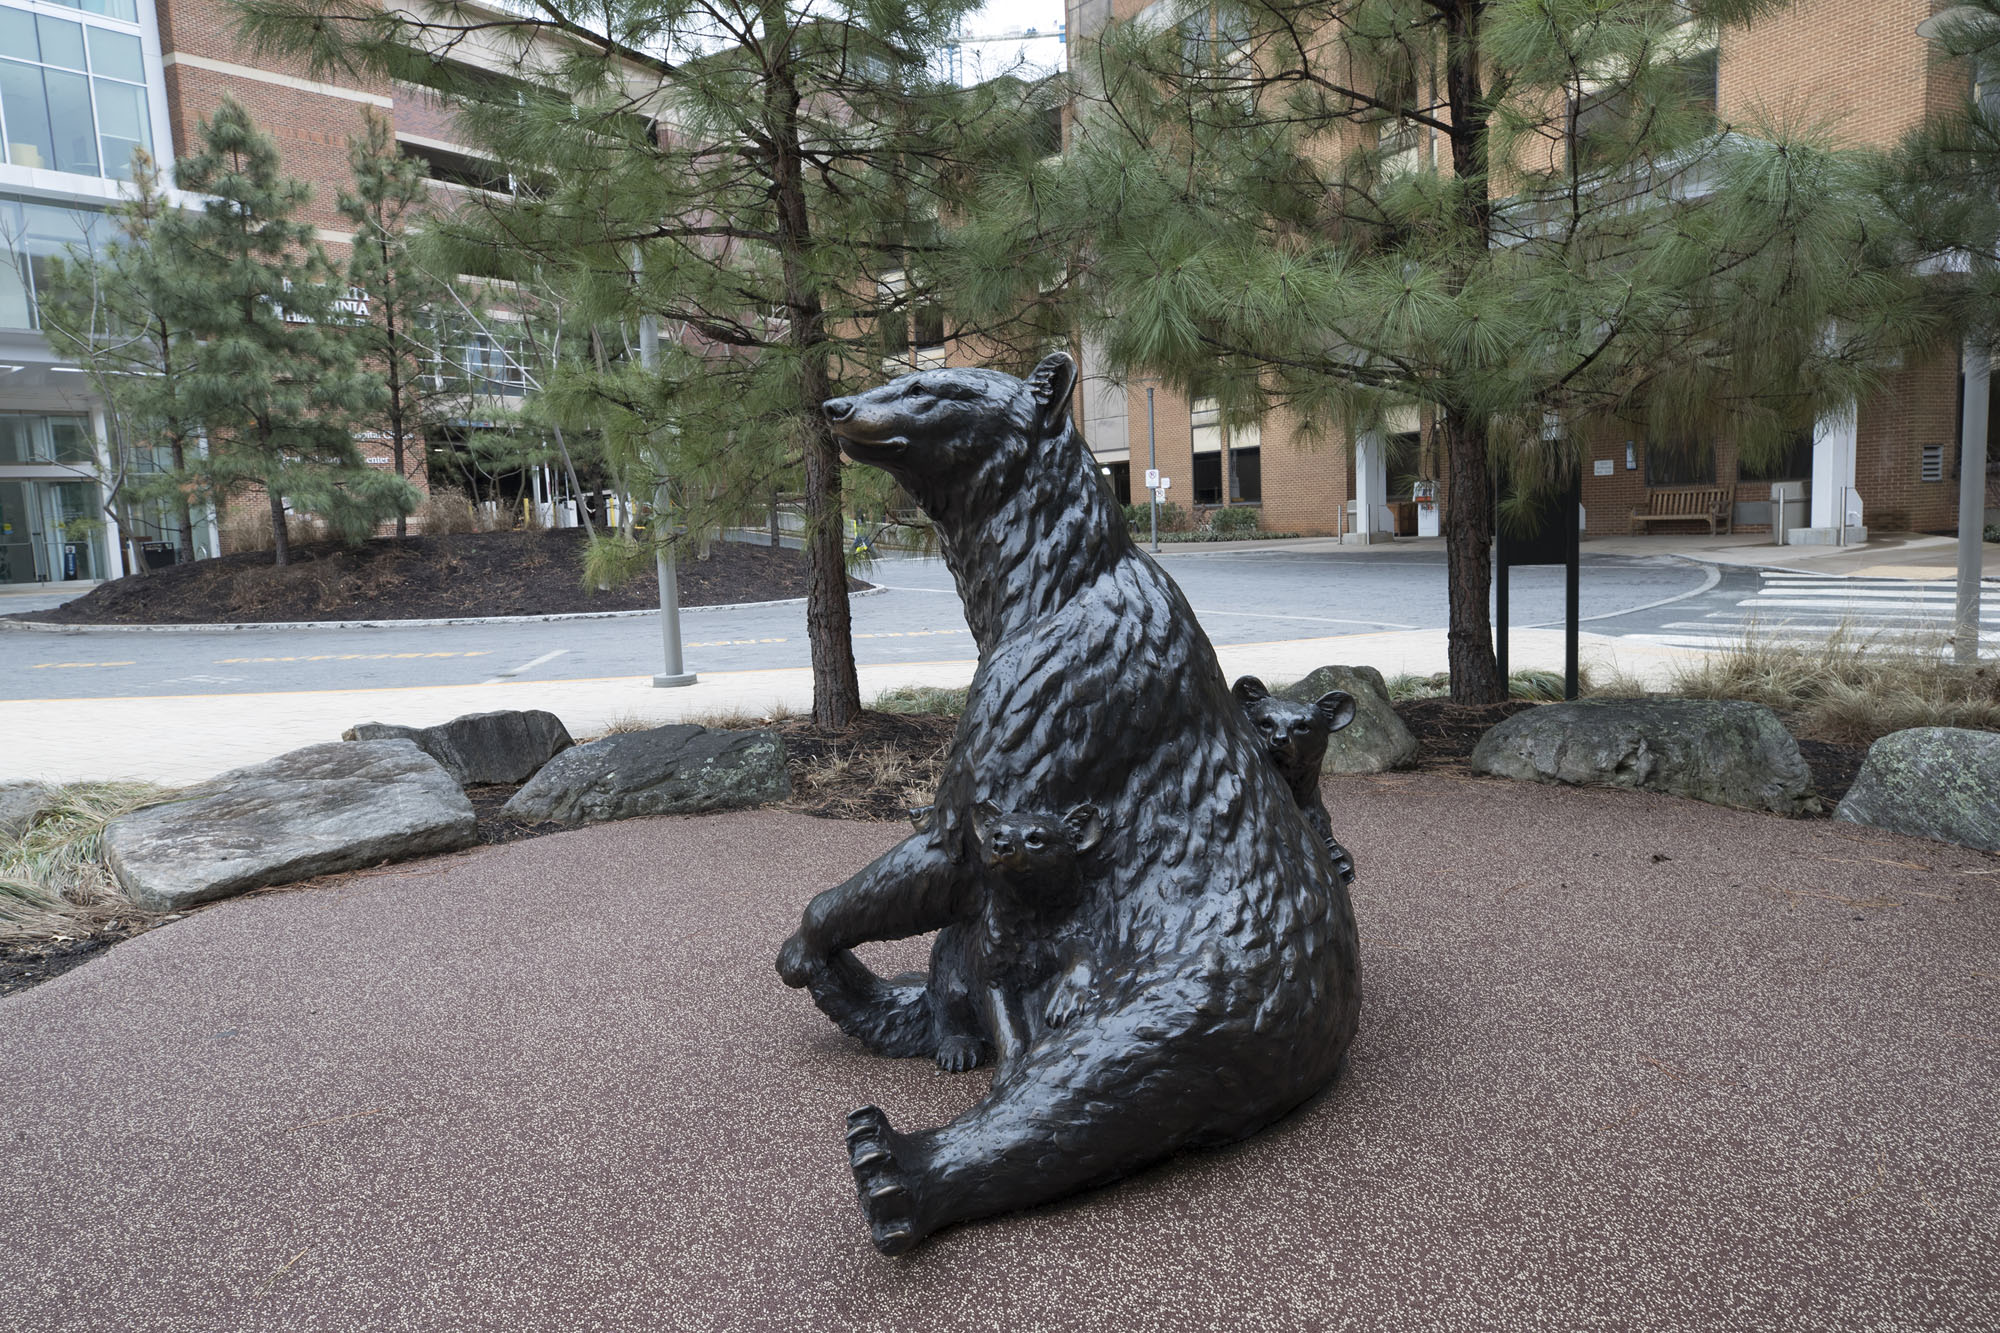 The mother bear with cubs was the first wildlife statue added to the plaza.